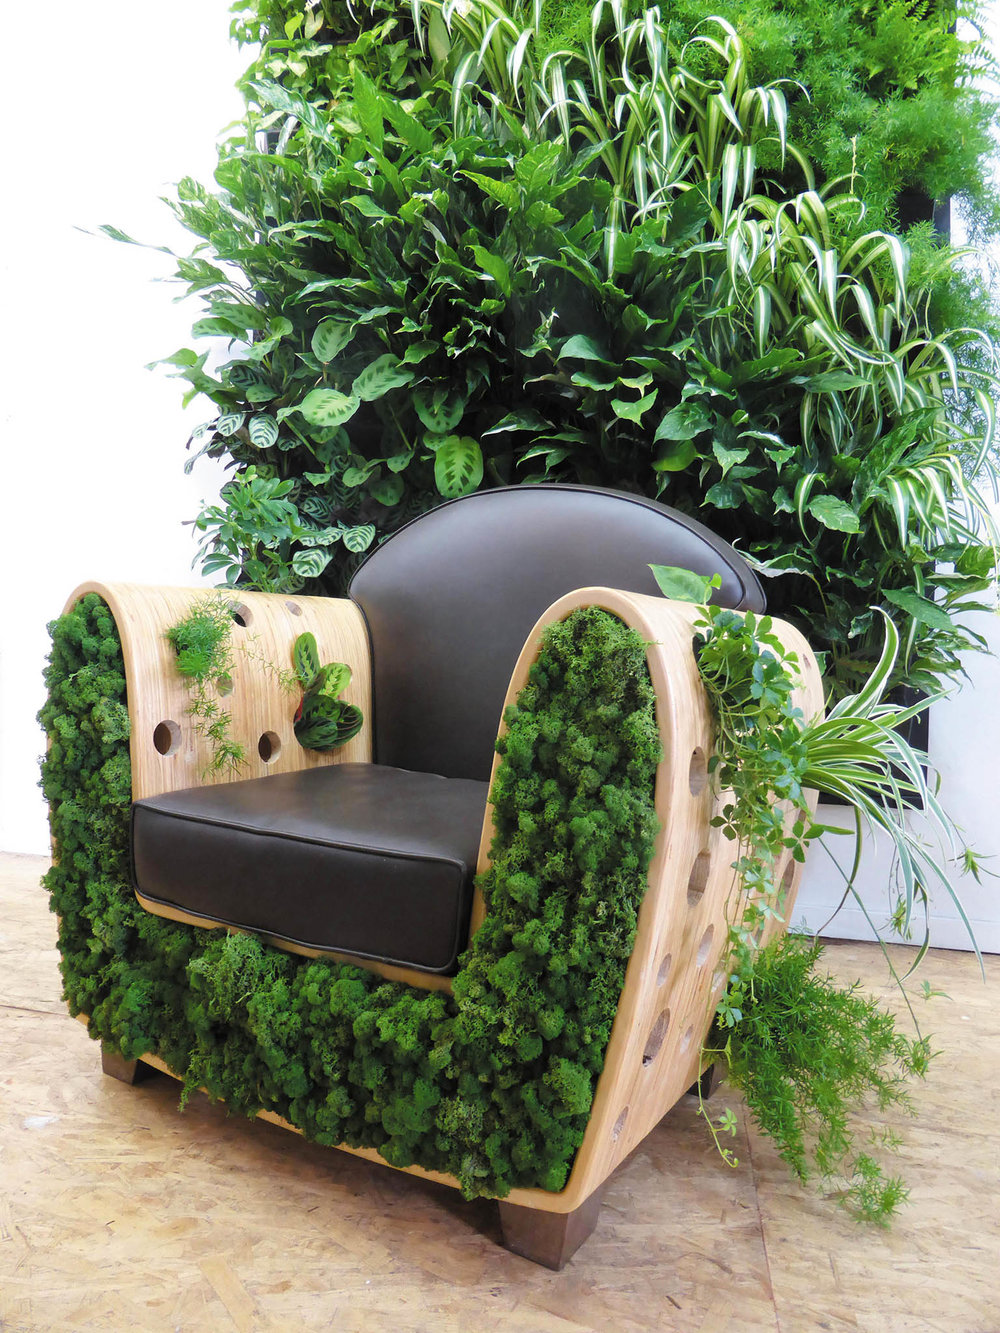 ByNature Sofa decorated with plant elements  bynaturedesign.ca